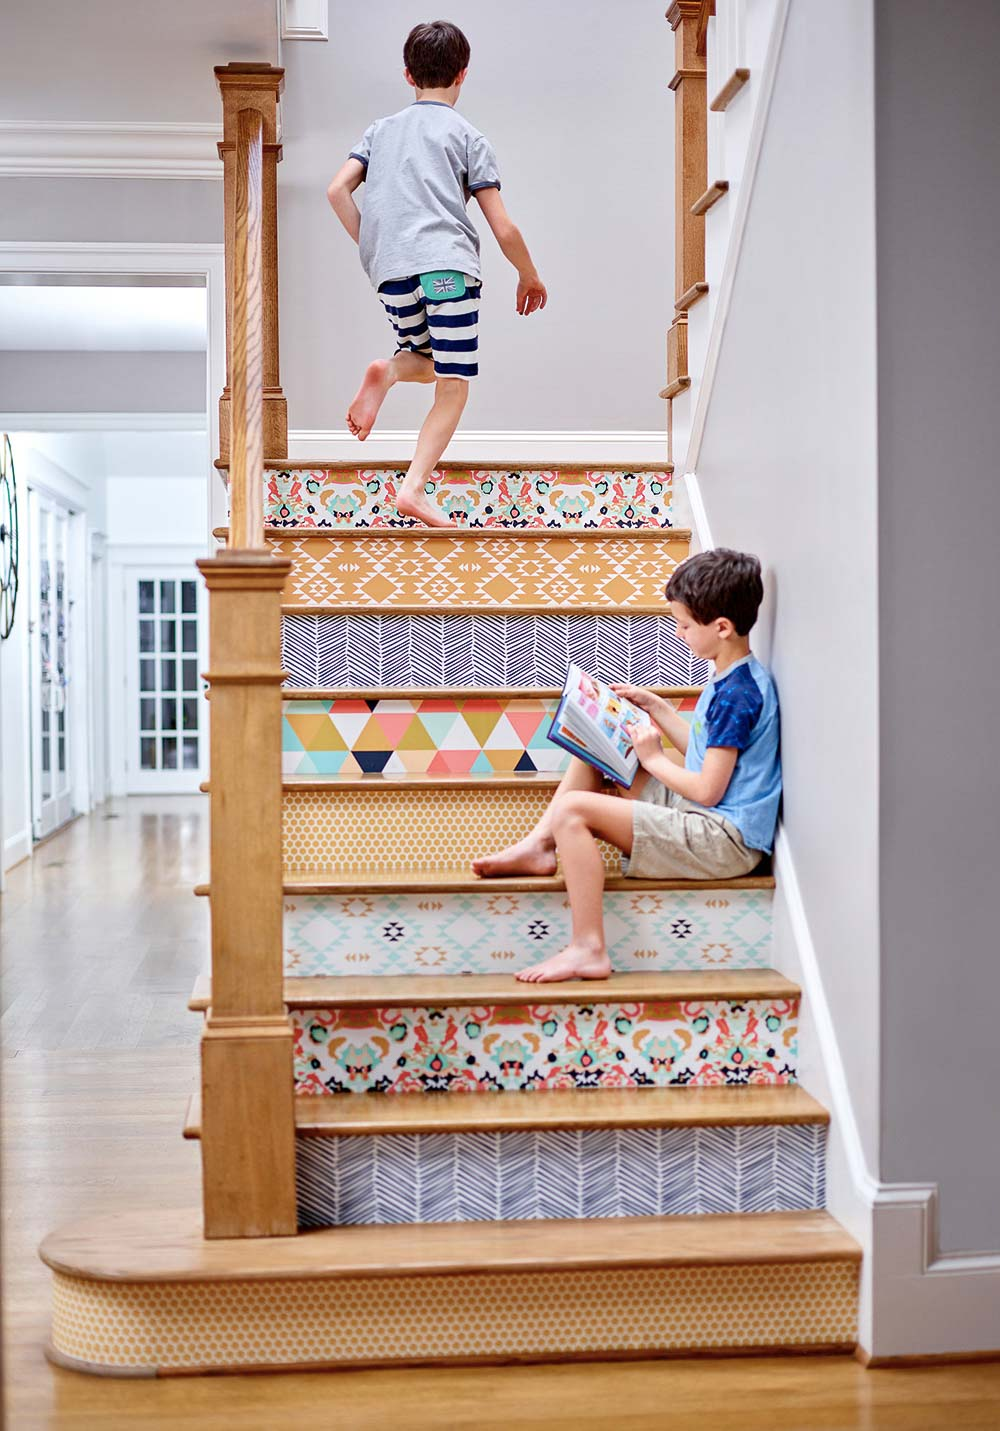 Wallpaper your stair risers for a fun pop of unexpected color and pattern